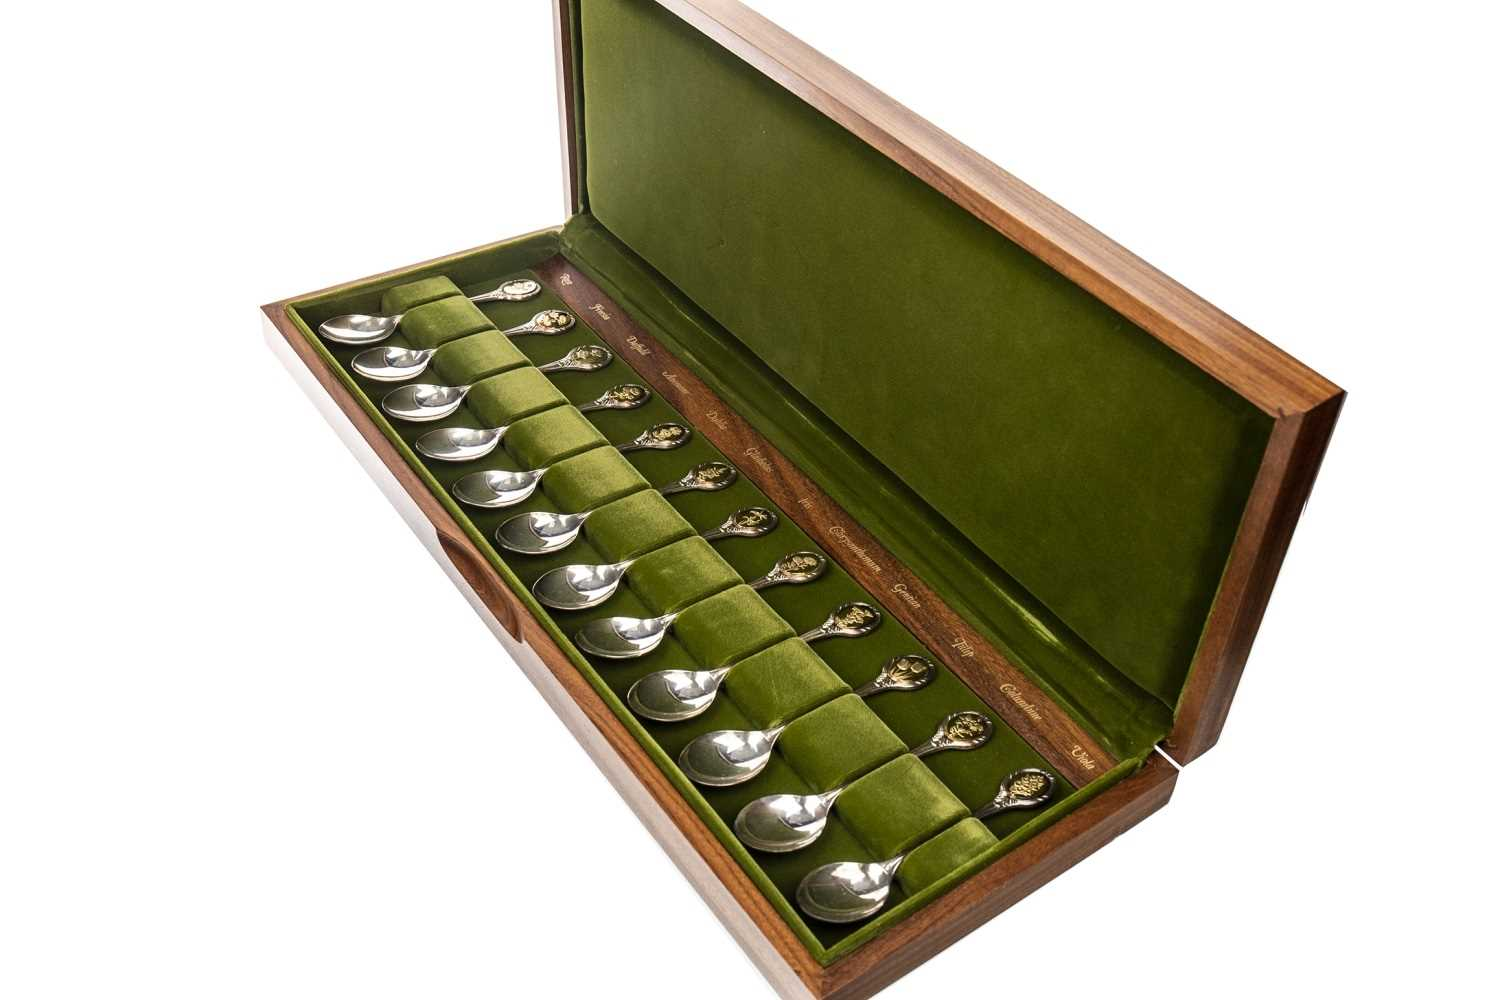 Lot 835 - A SET OF TWELVE ROYAL HORTICULTURAL SOCIETY SILVER SPOONS